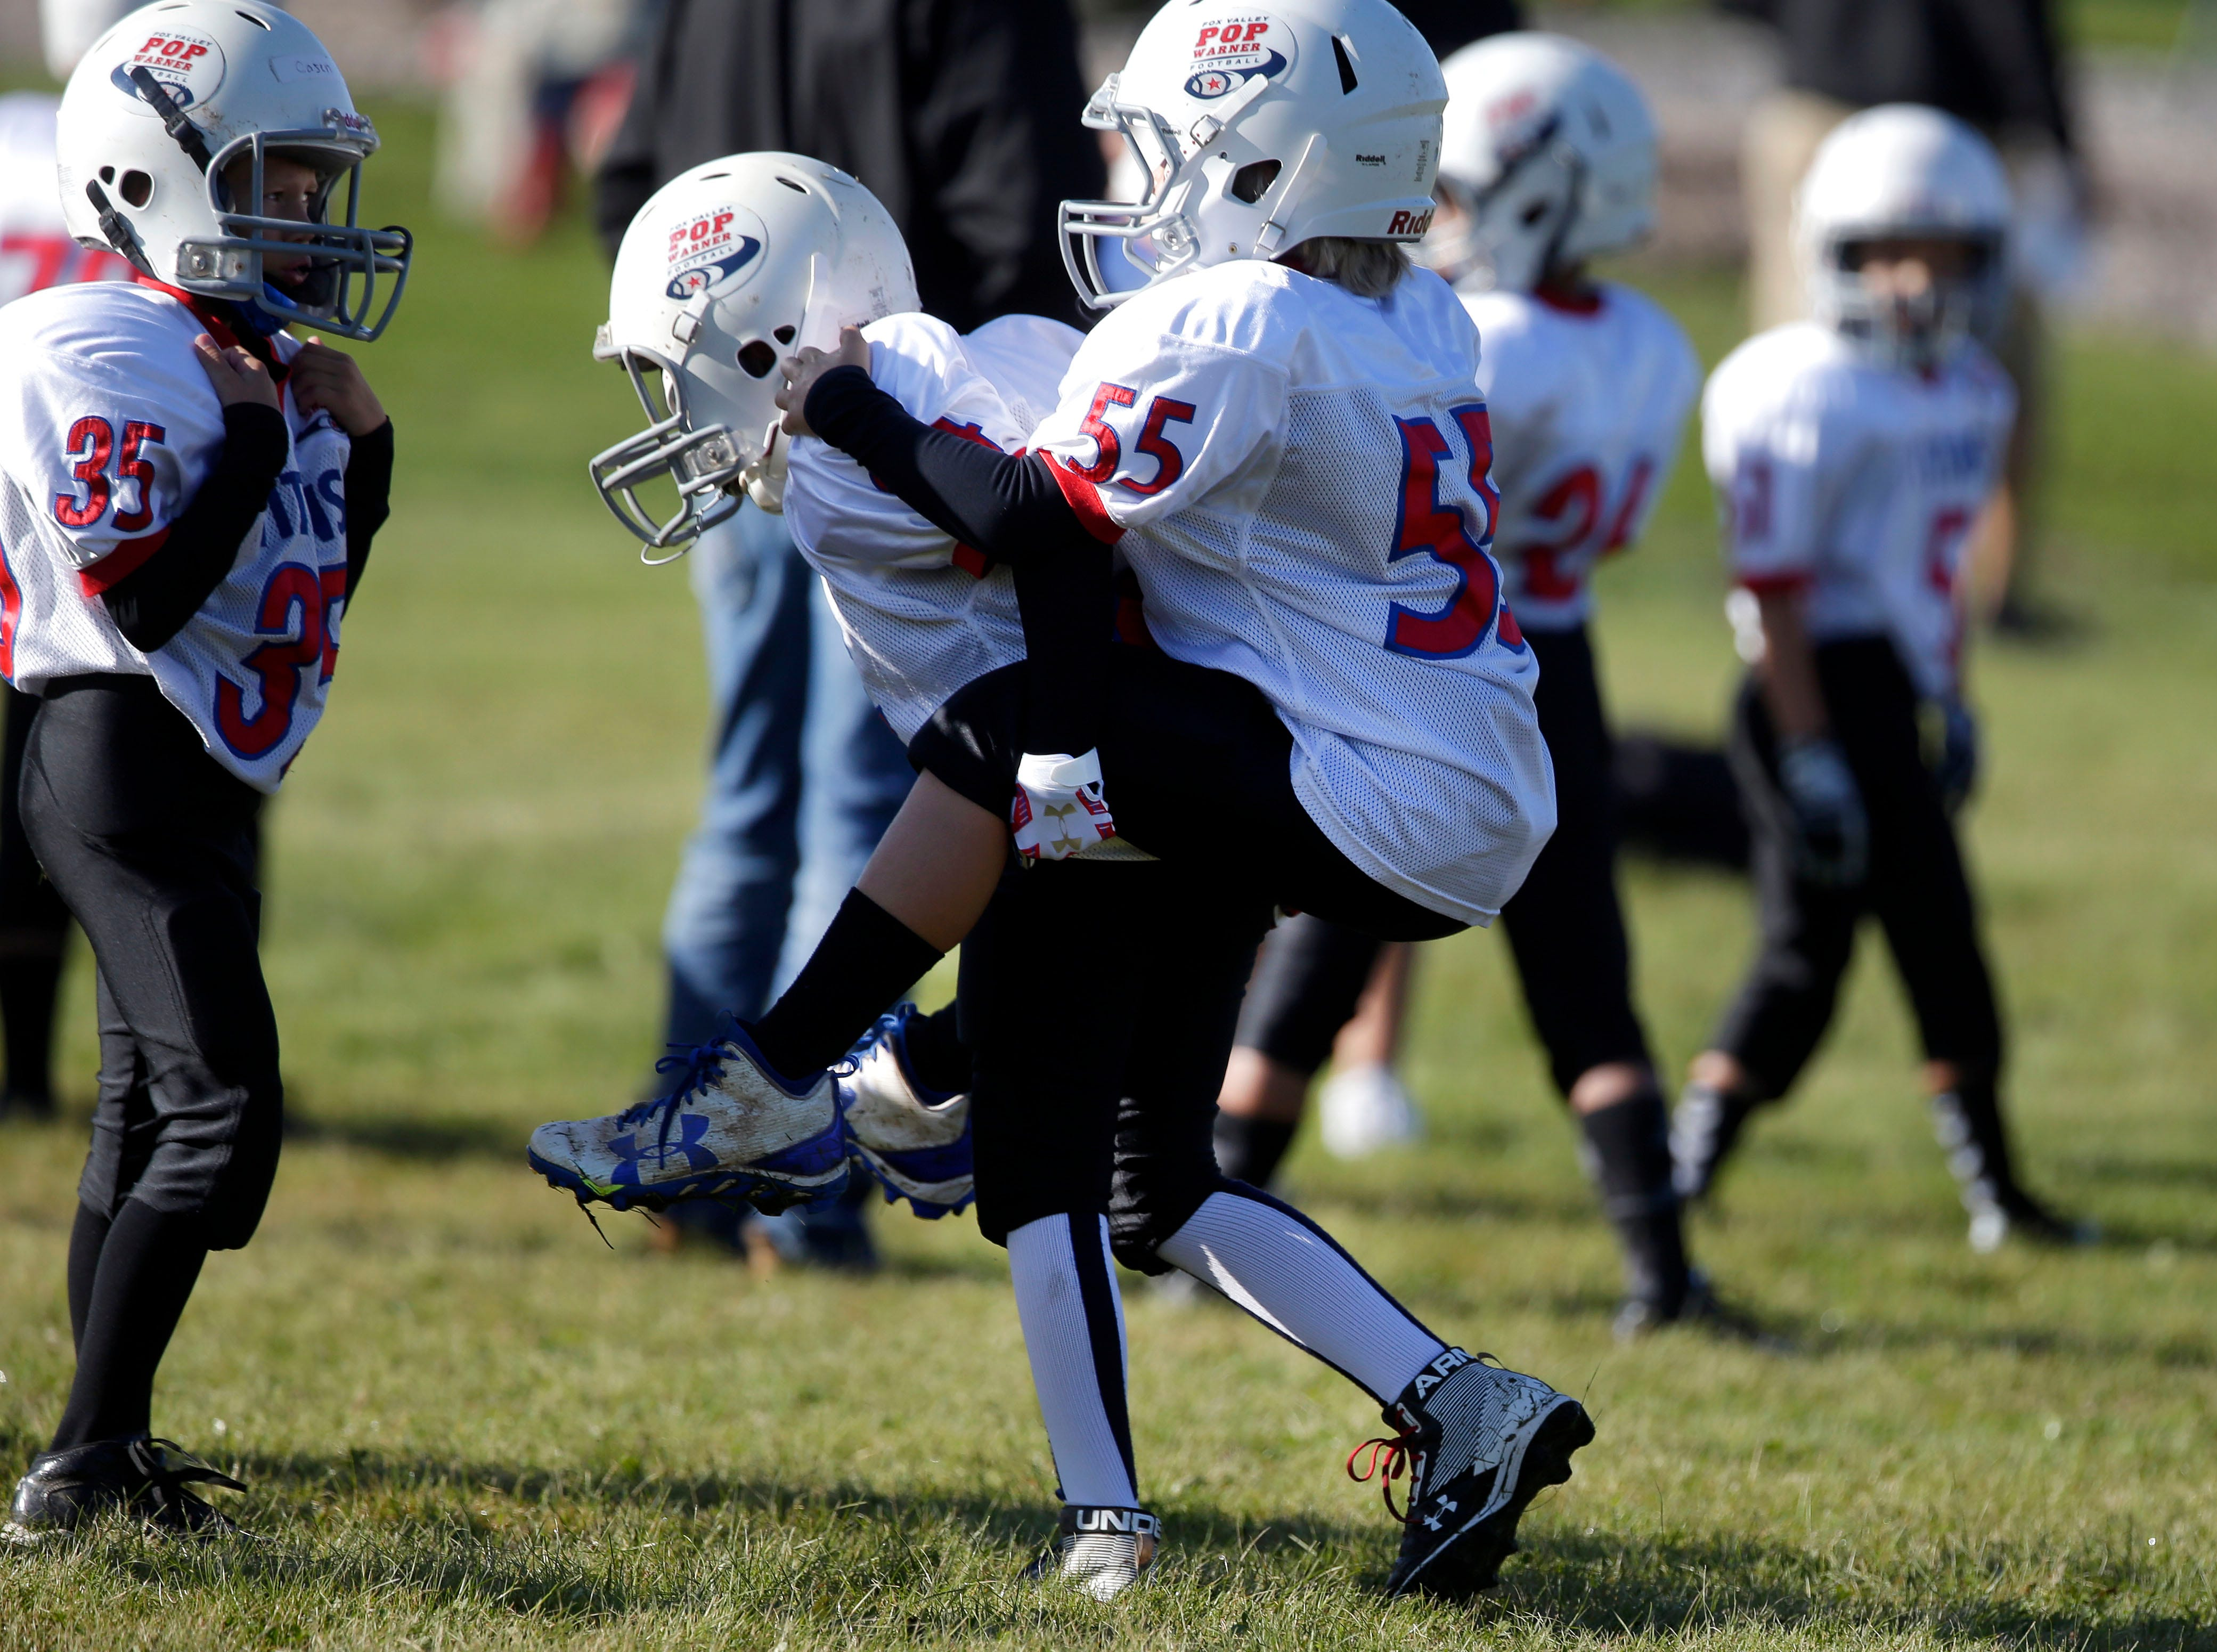 Players find time to horse around as Fox Valley Pop Warner Football opens the season Saturday, September 8, 2018, at Plamann Park in Grand Chute, Wis.Ron Page/USA TODAY NETWORK-Wisconsin